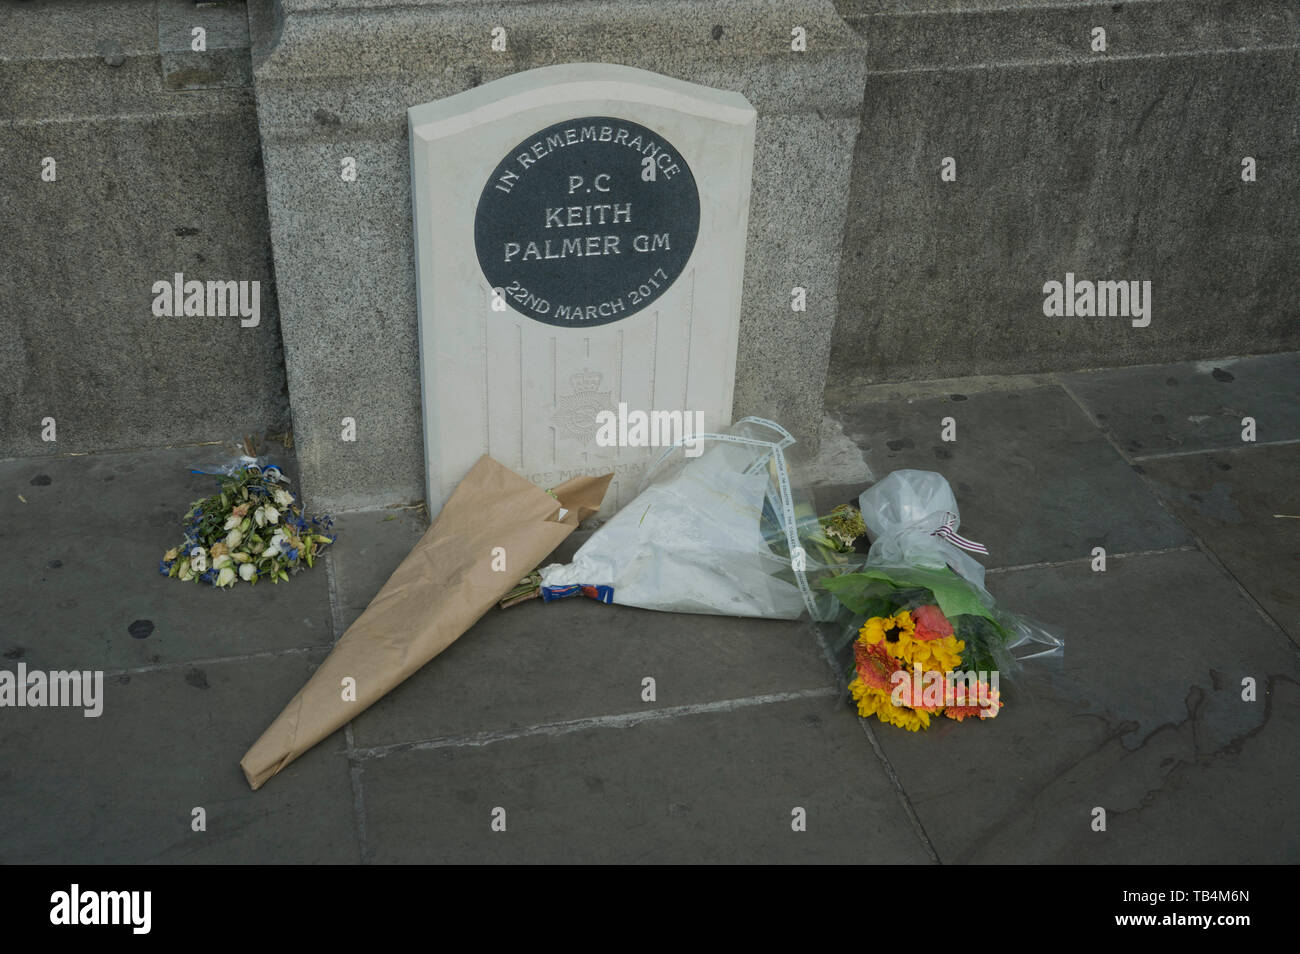 Memorial to PC Keith Palmer GM, killed during a terrorist attack on the Houses of Parliament in Westminster,London,England,UK Stock Photo